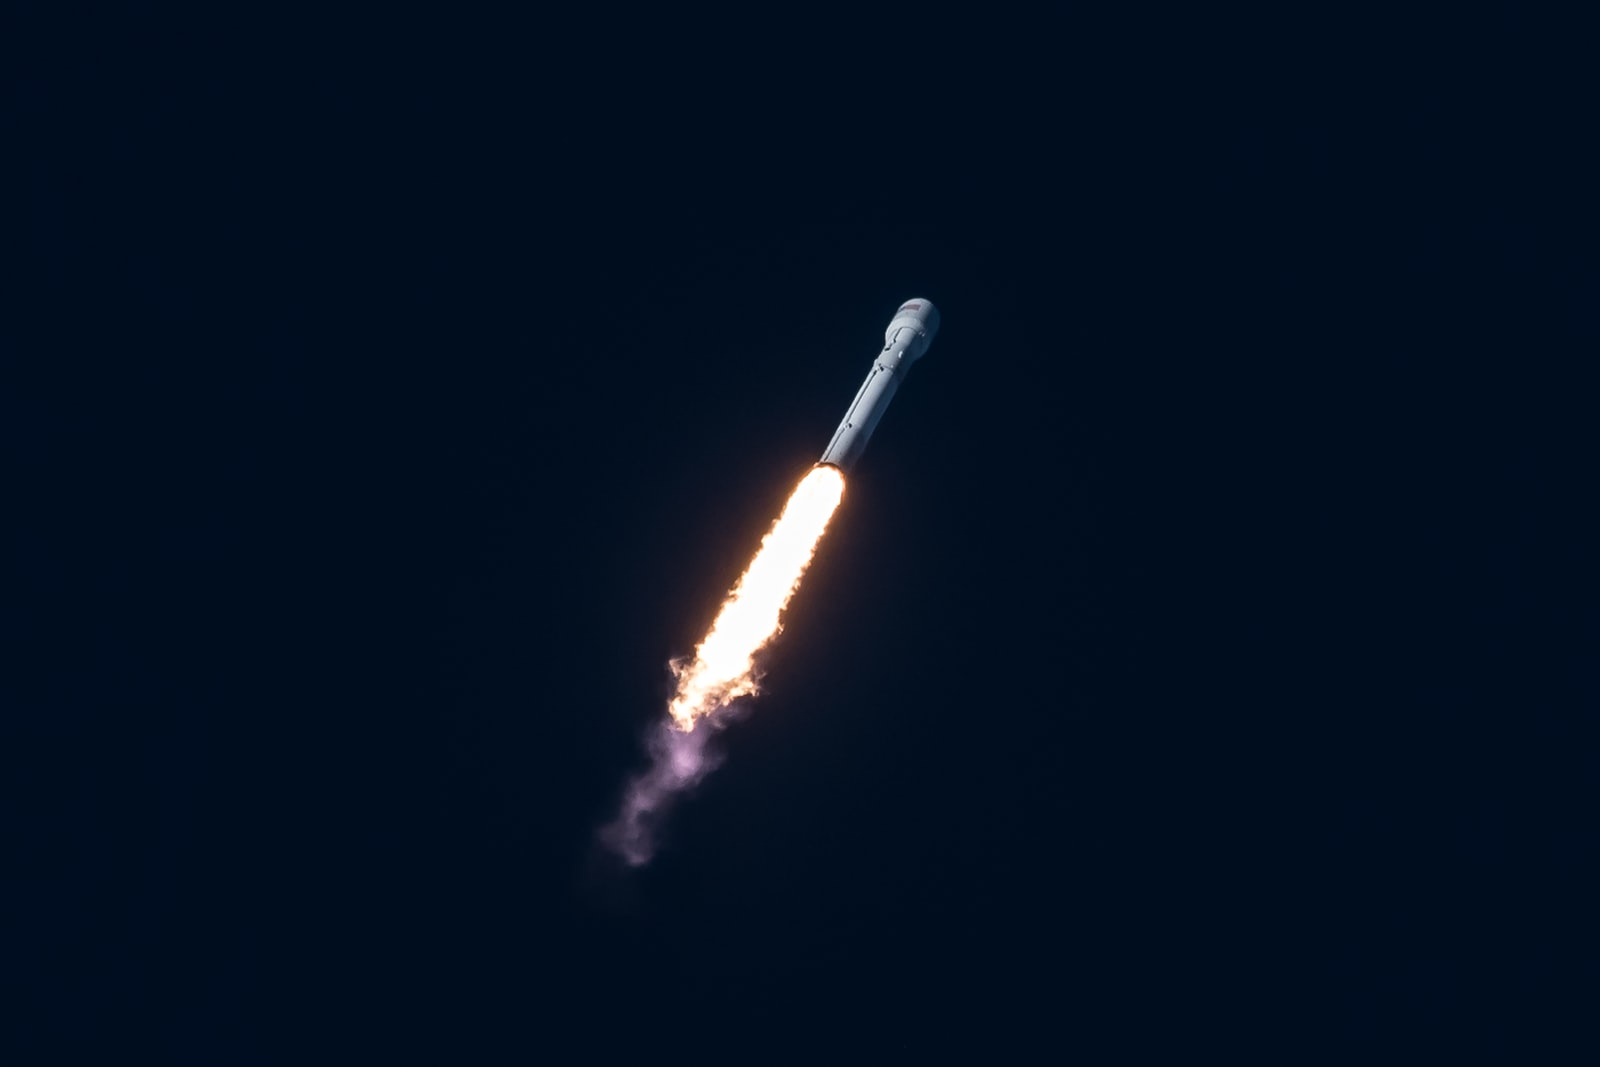 spacecraft flying through the